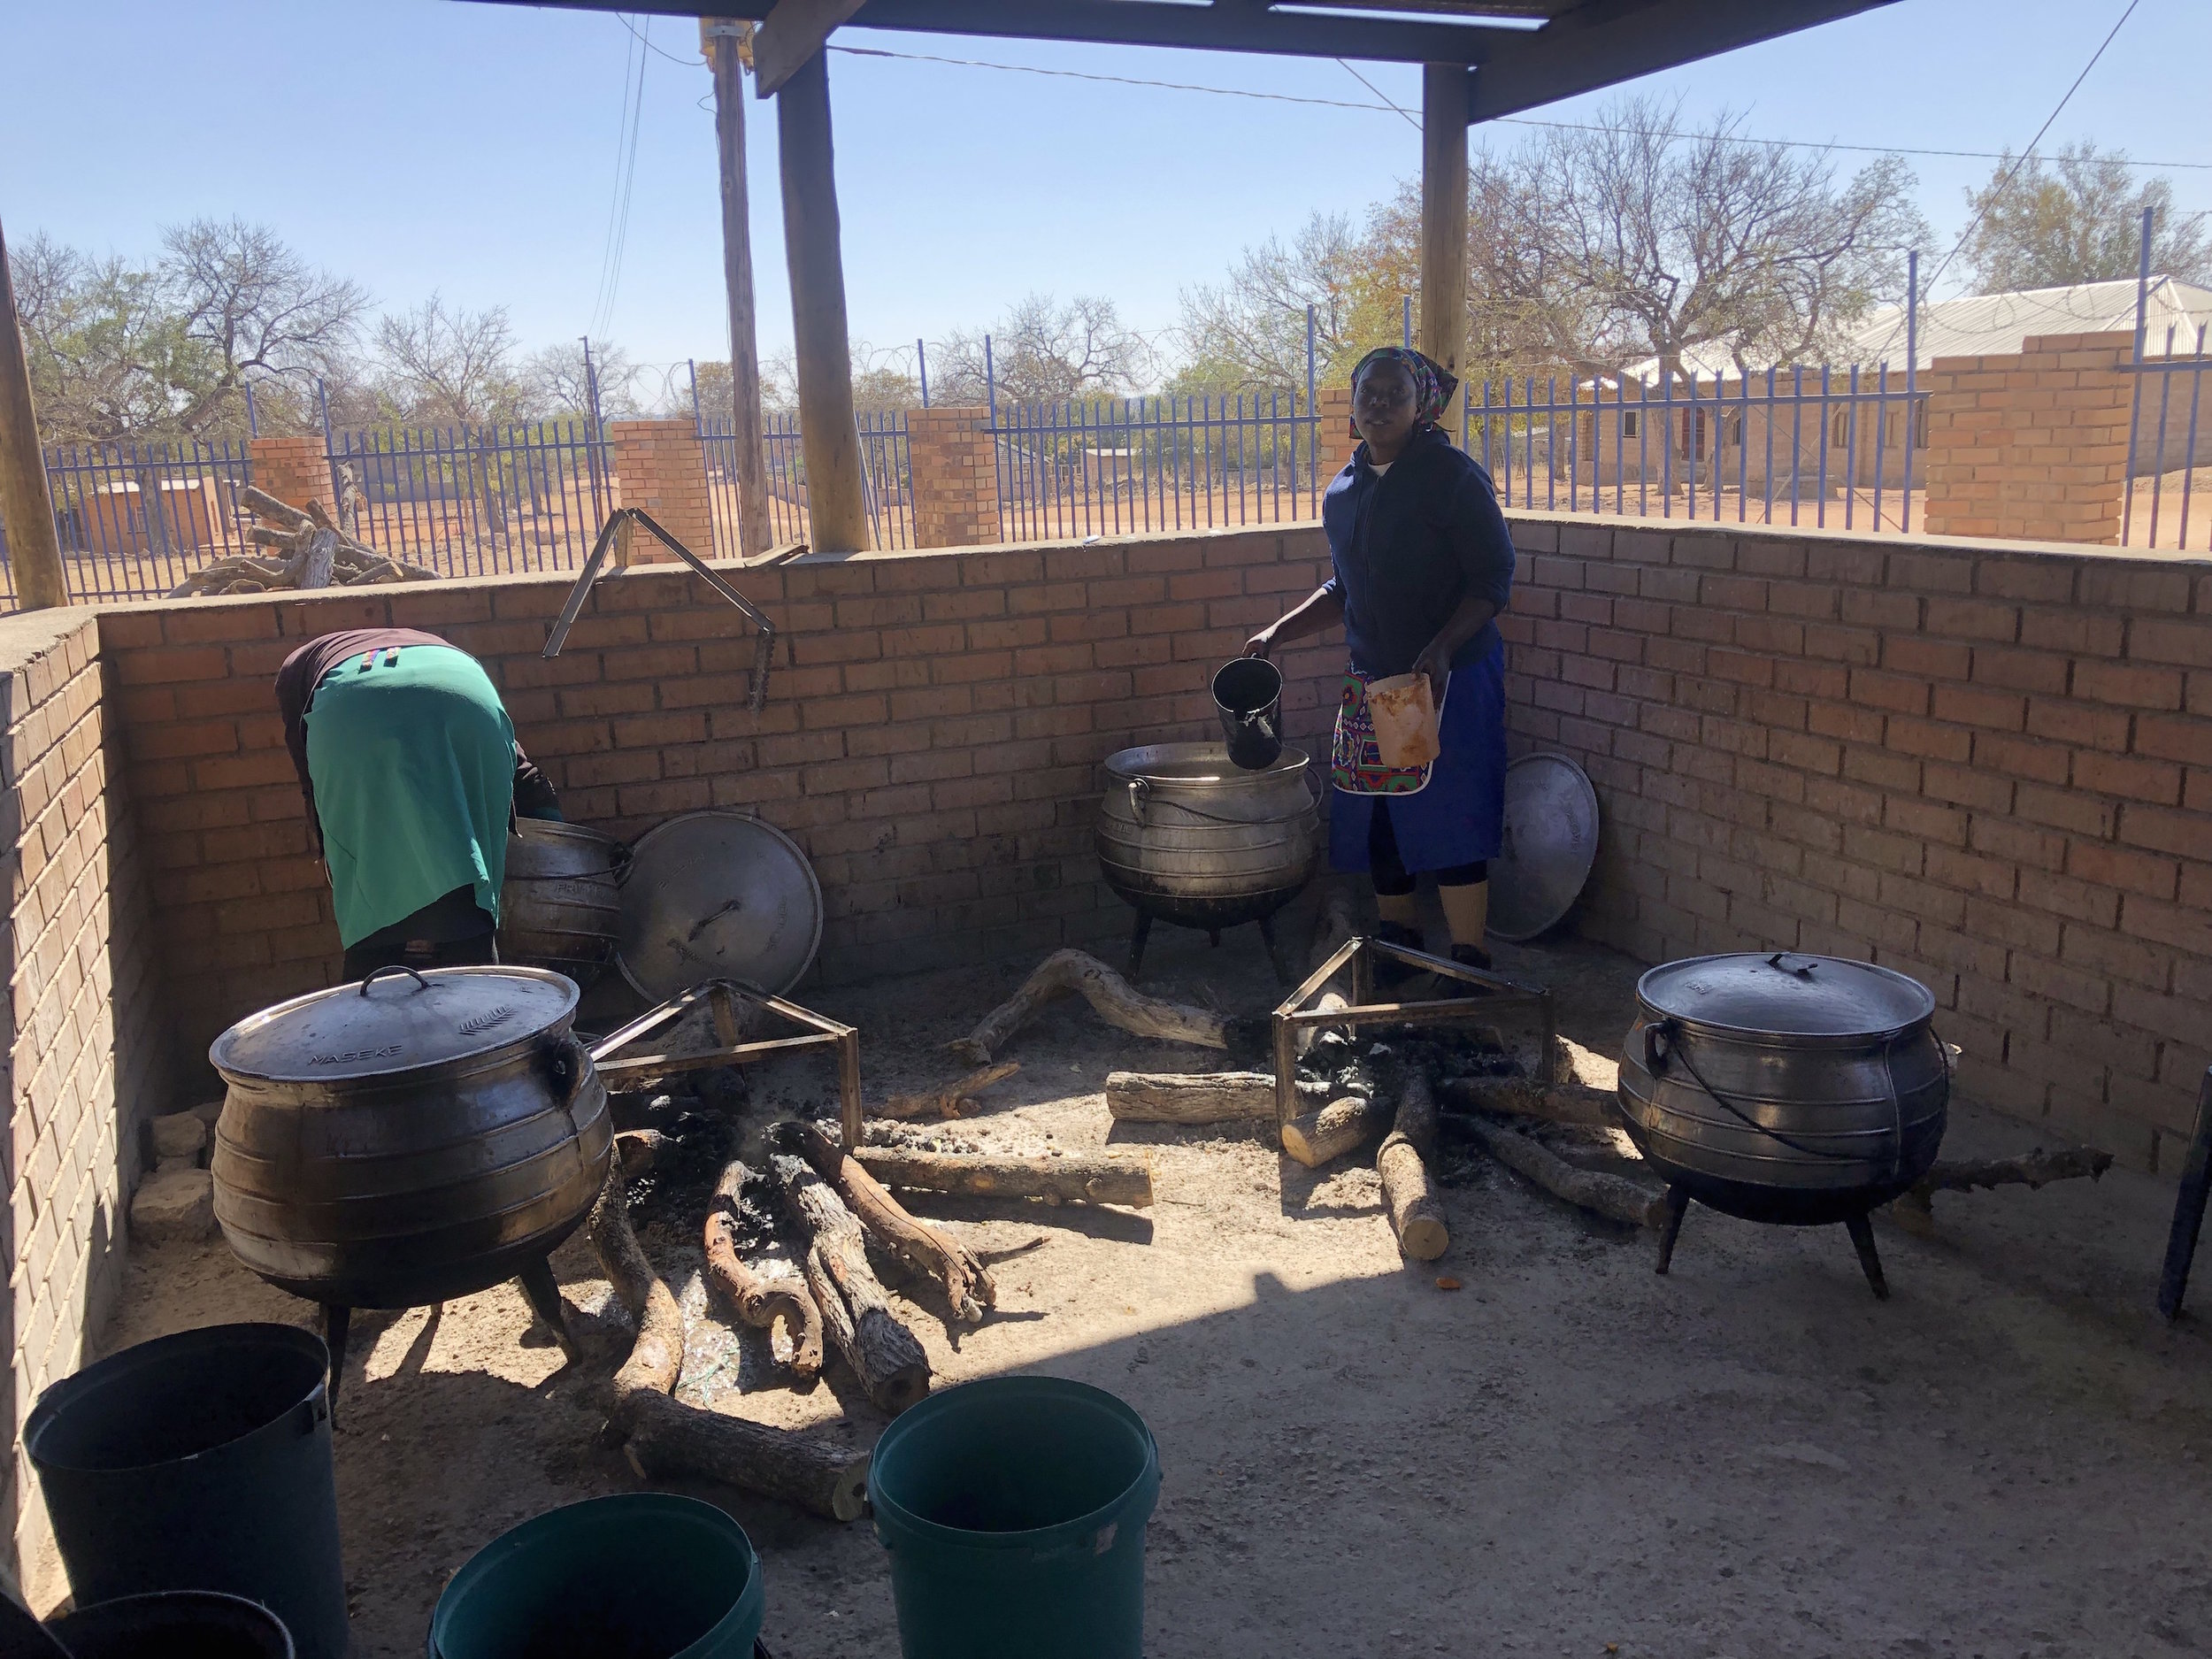 The three gas-burner stoves, large pots and LPG gas burners will greatly assist the parents who operate the programme on a voluntary basis.